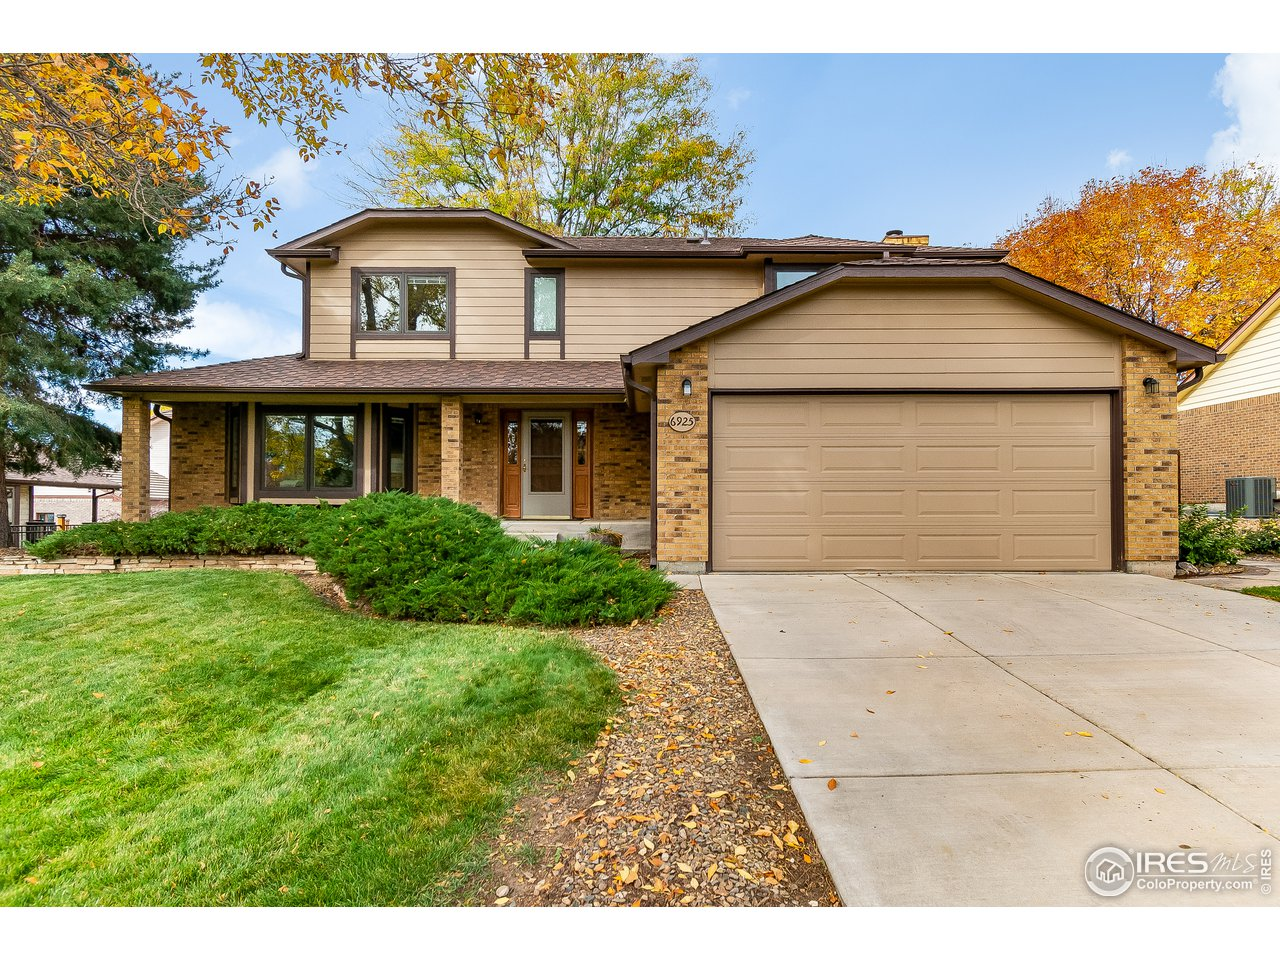 6925 Independence St, Arvada CO 80004